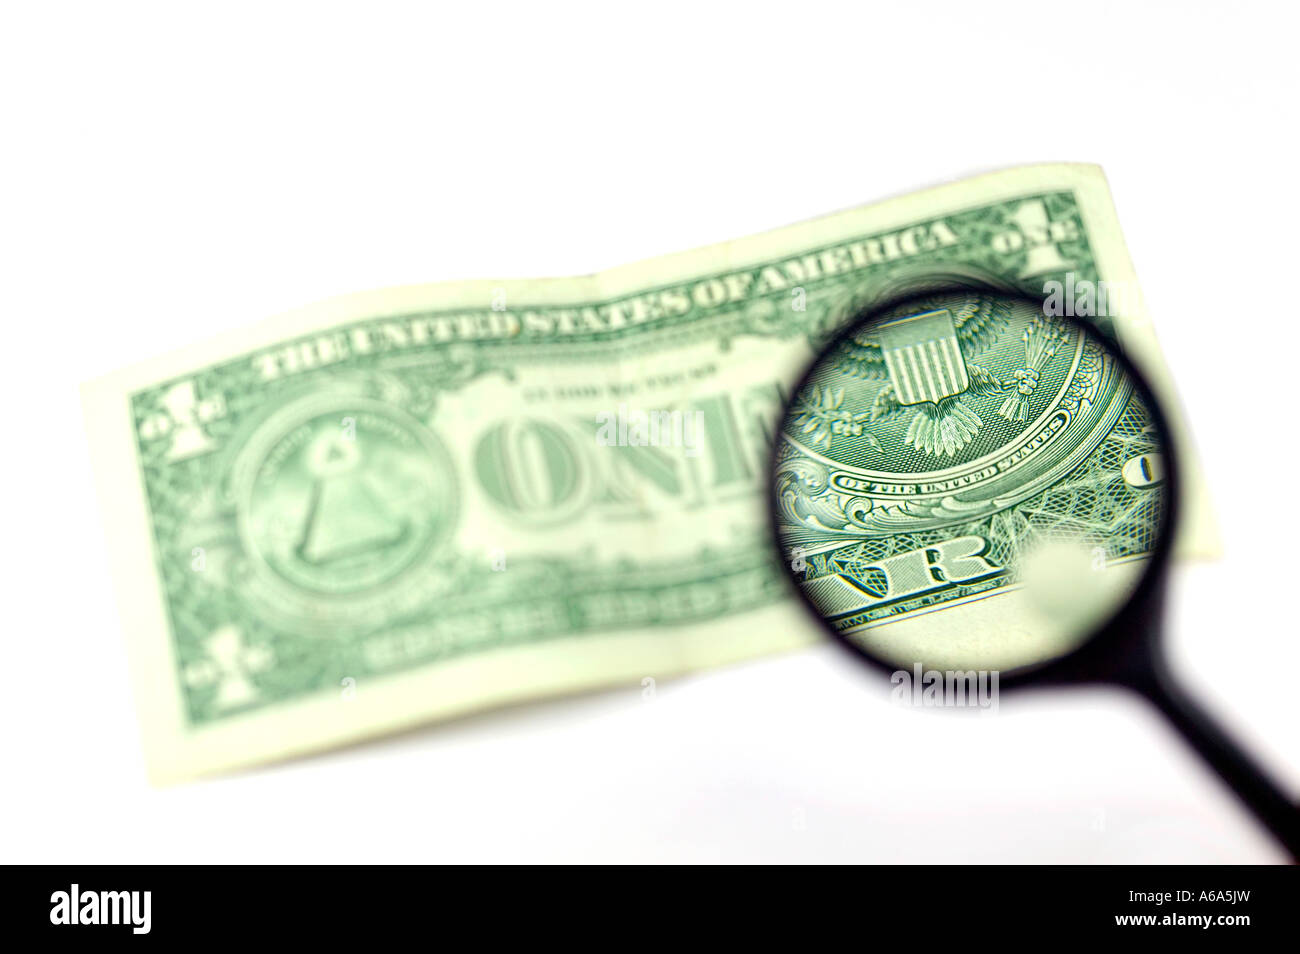 View through a magnifying glass the back of a one dollar note isolated on white - Stock Image